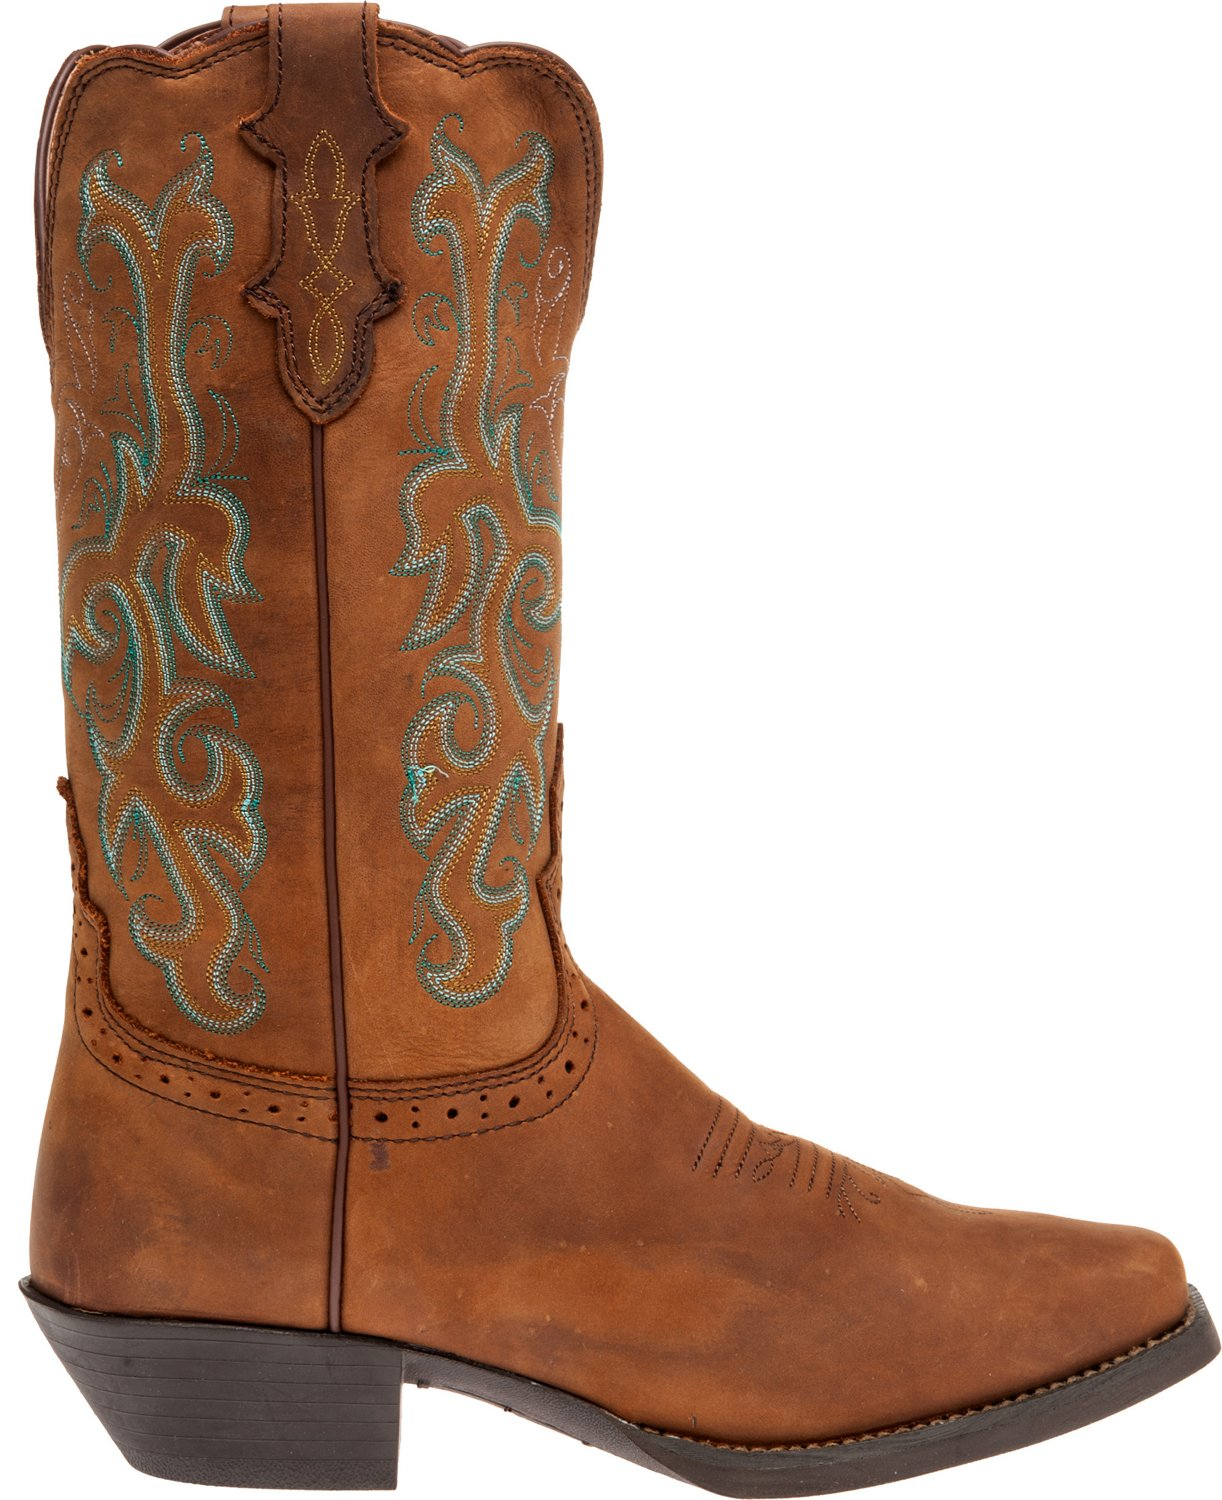 4882d41211bcd Display product reviews for Justin Women's Stampede Sorrel Apache Western  Boots